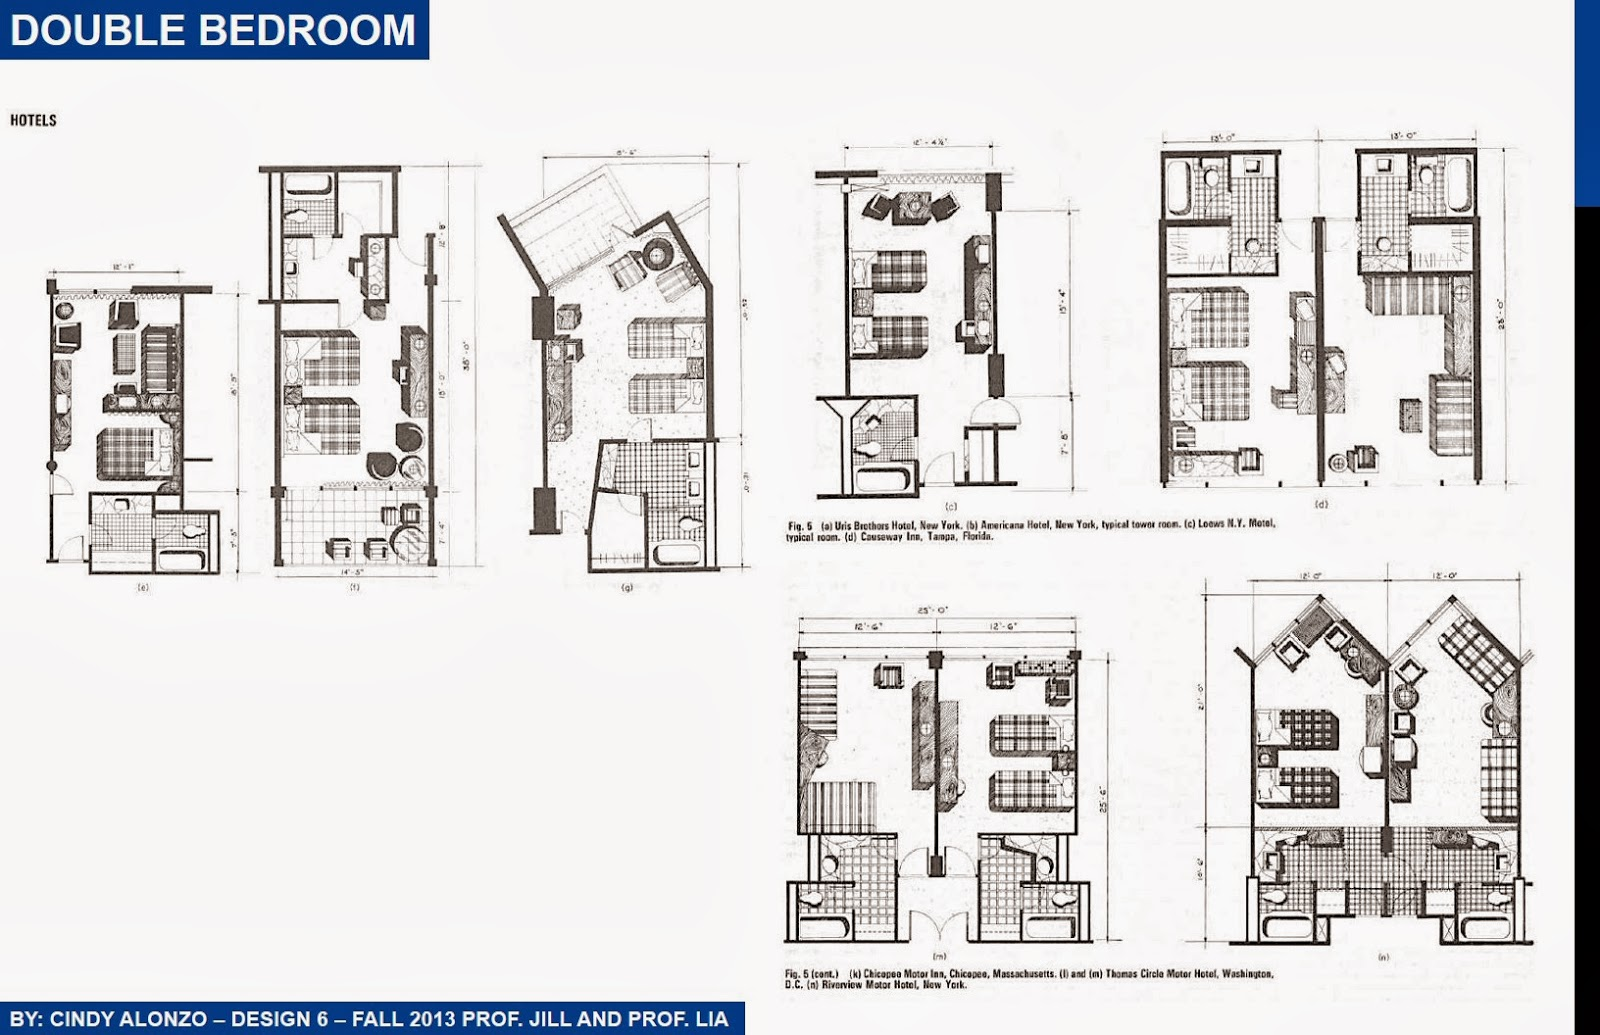 Arch3610f13cindyalonzo furniture layouts room dimensions Room layout